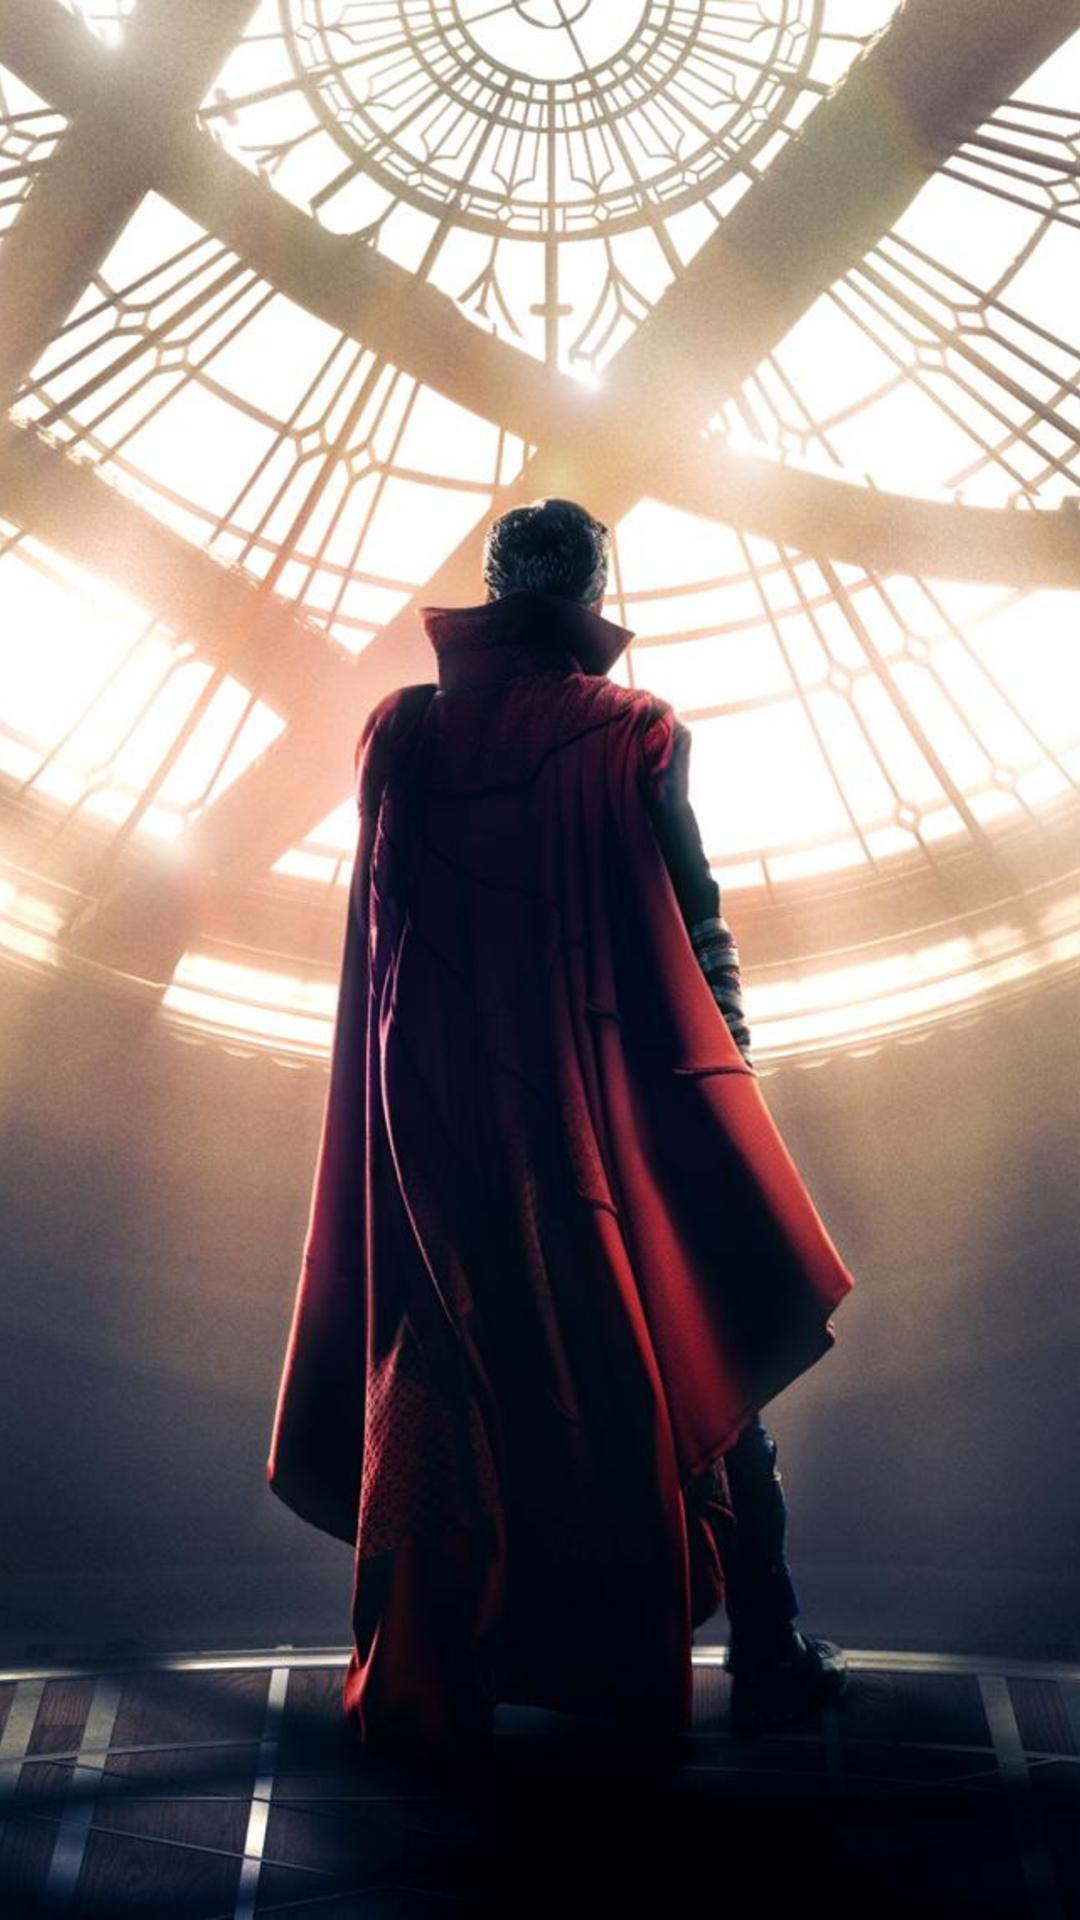 Doctor Strange HD Android Wallpapers - Wallpaper Cave